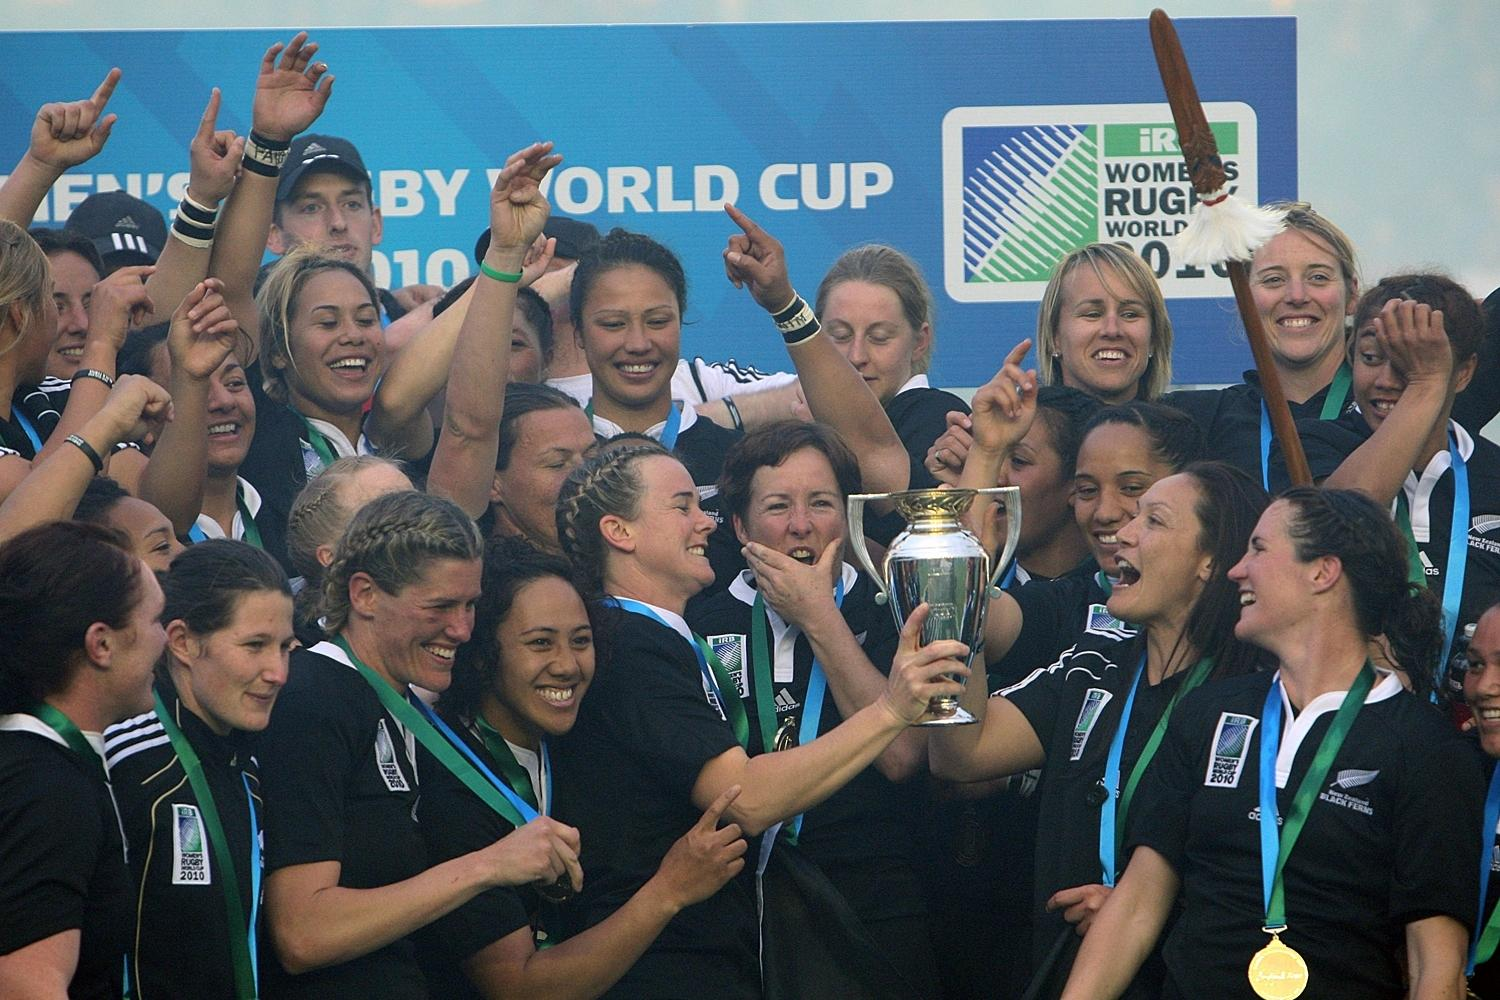 WRWC 2010: New Zealand celebrate their victory over England